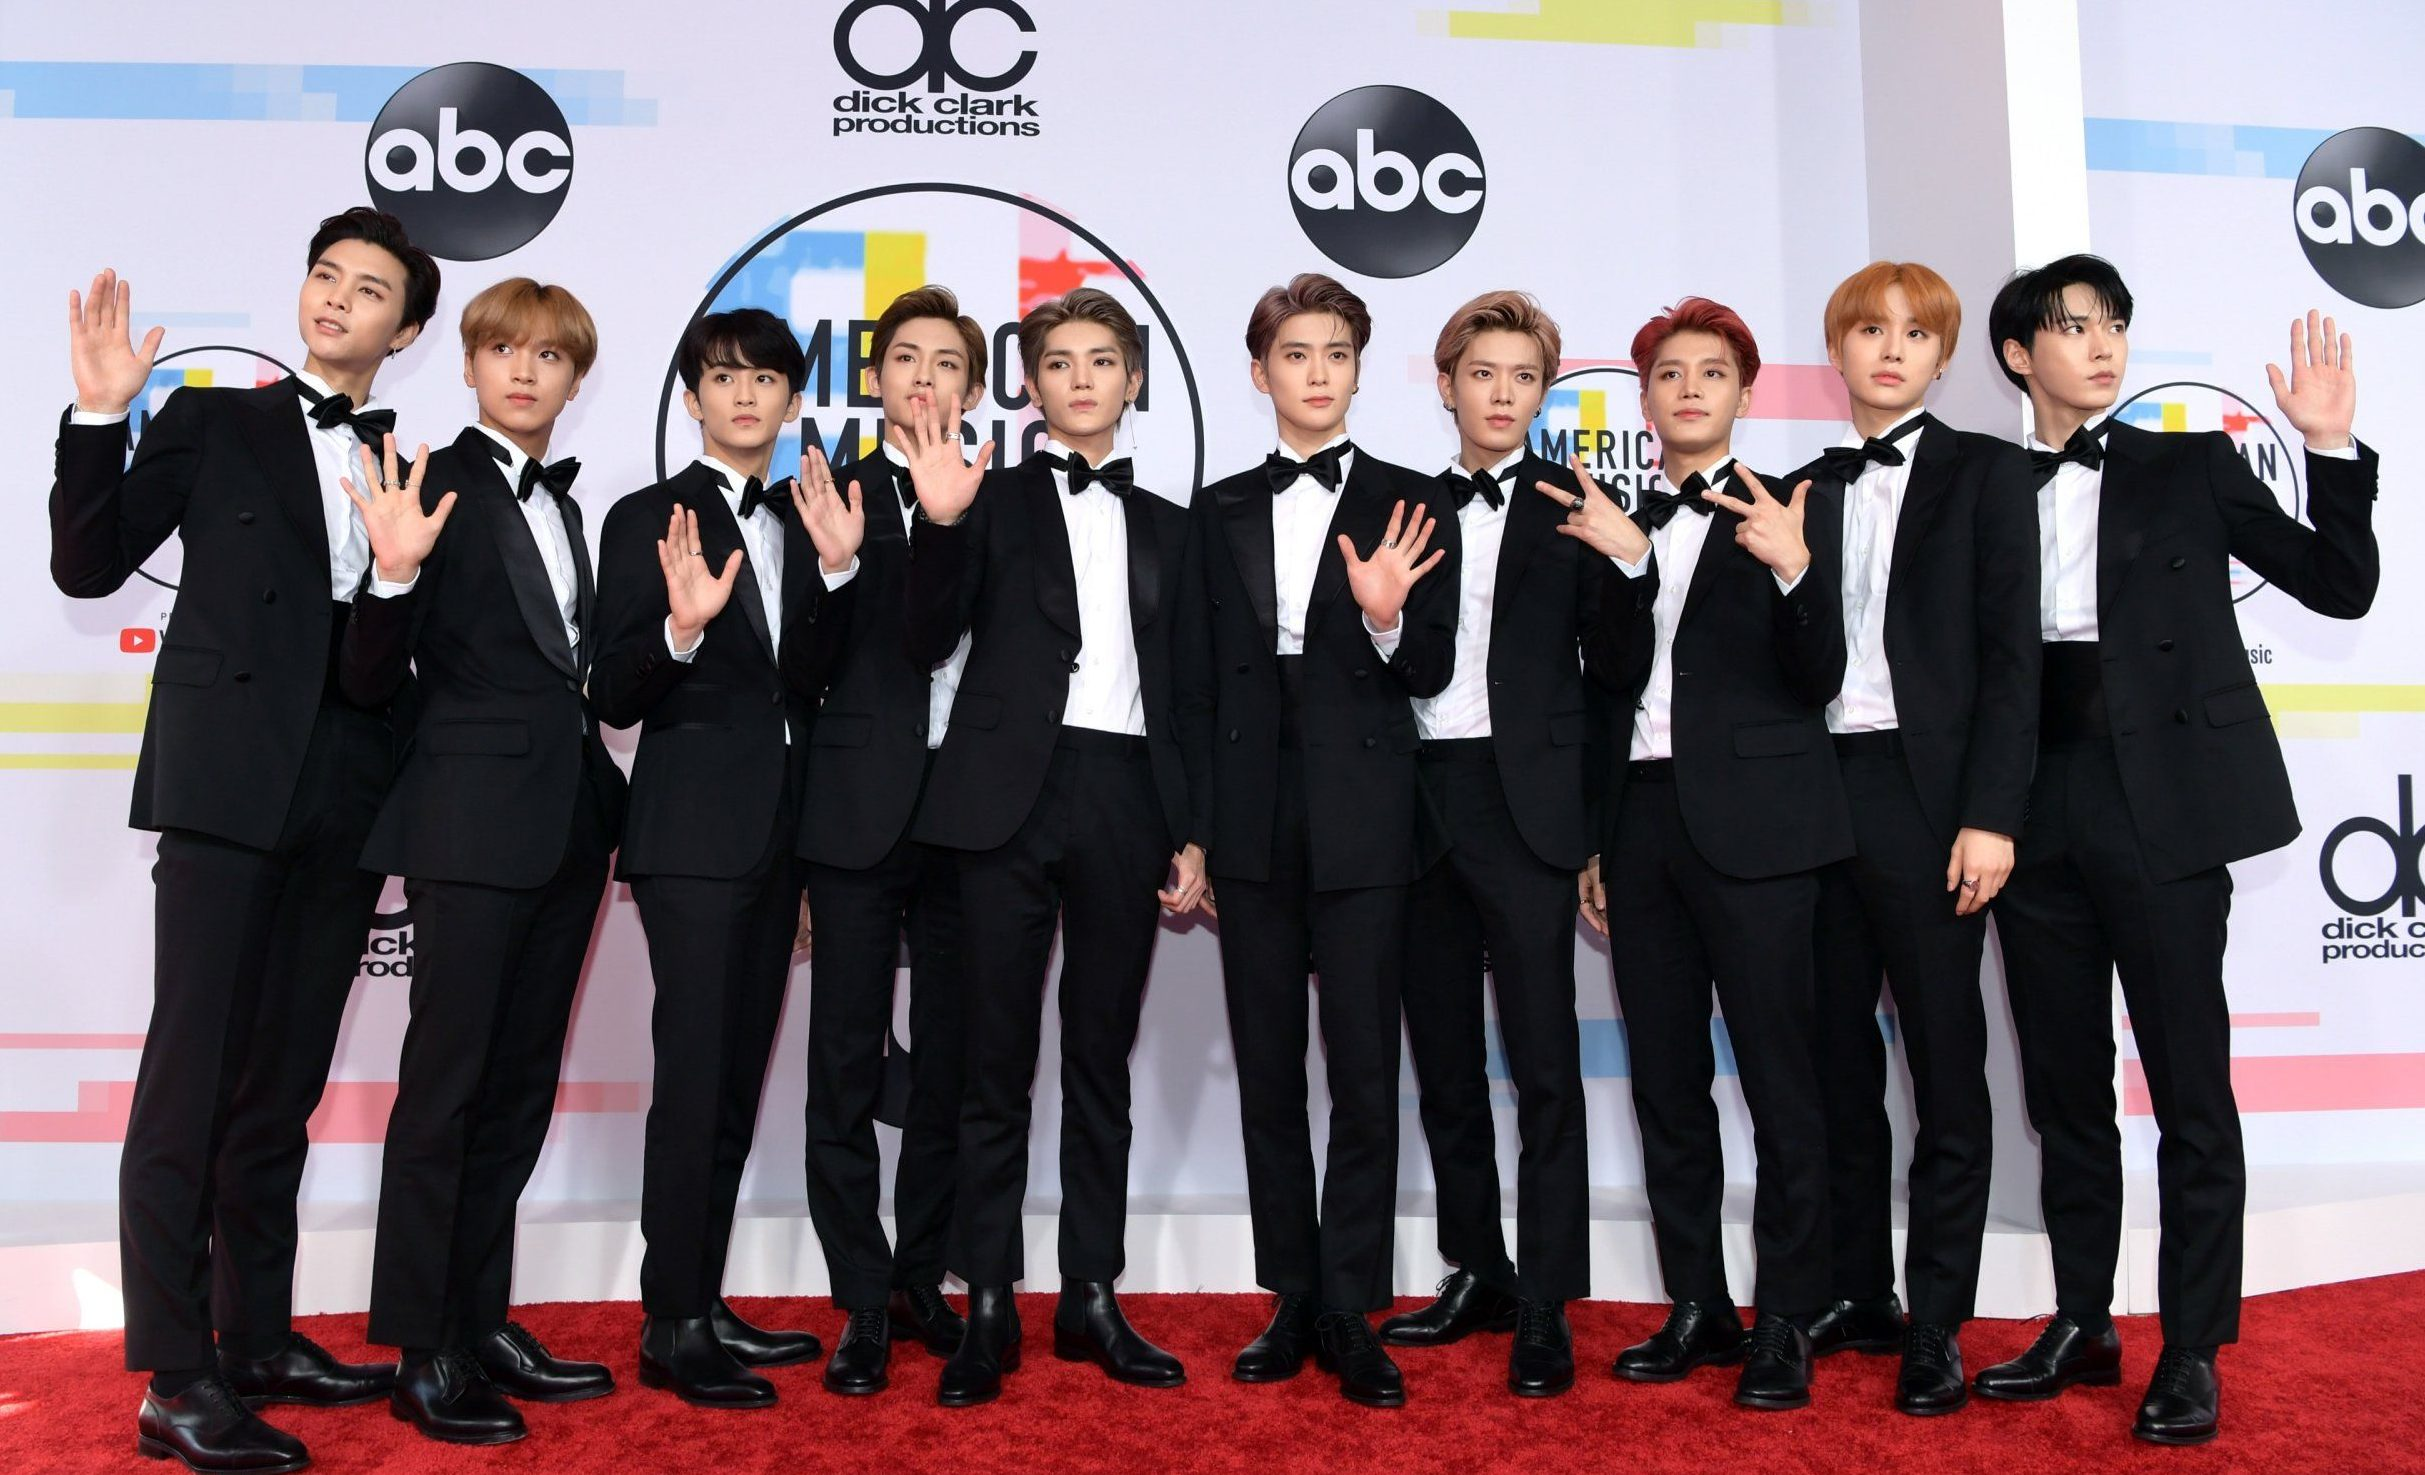 LOS ANGELES, CA - OCTOBER 09: NCT 127 attends the 2018 American Music Awards at Microsoft Theater on October 9, 2018 in Los Angeles, California. (Photo by Emma McIntyre/Getty Images For dcp)